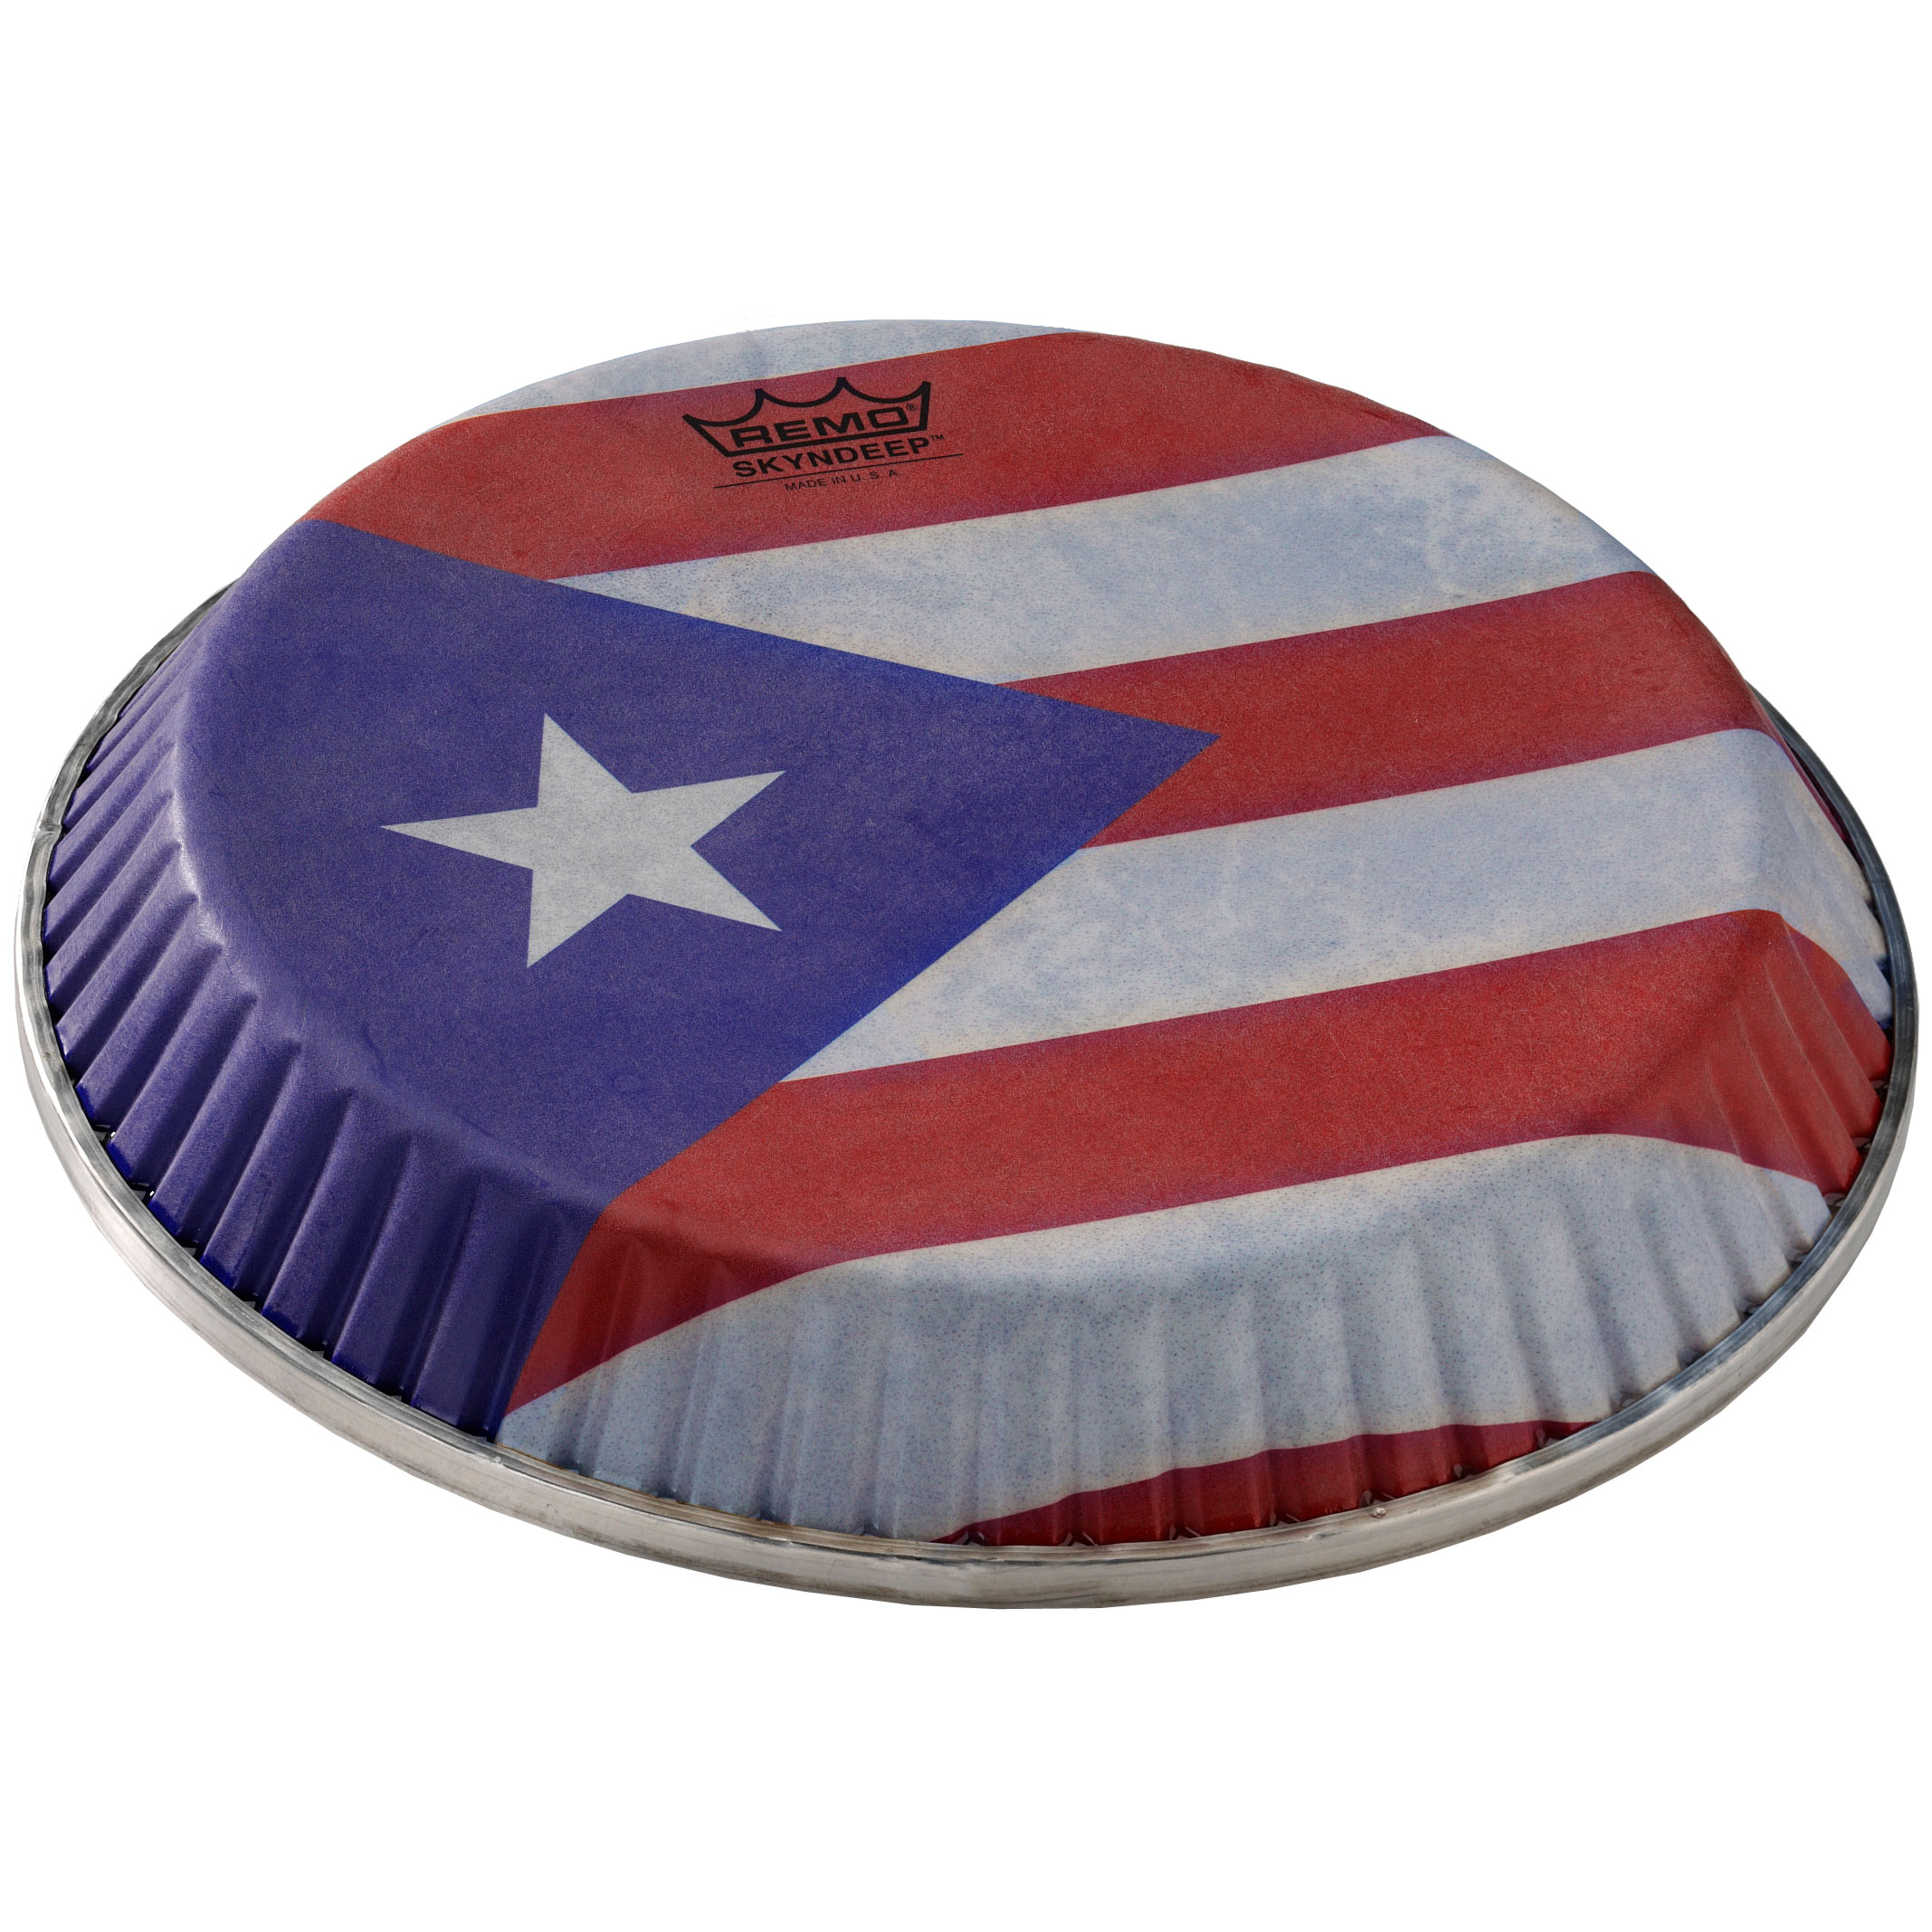 "Remo 12.5"" Symmetry Skyndeep Conga Drum Head (D2 Collar) with Puerto Rican Flag Graphic"